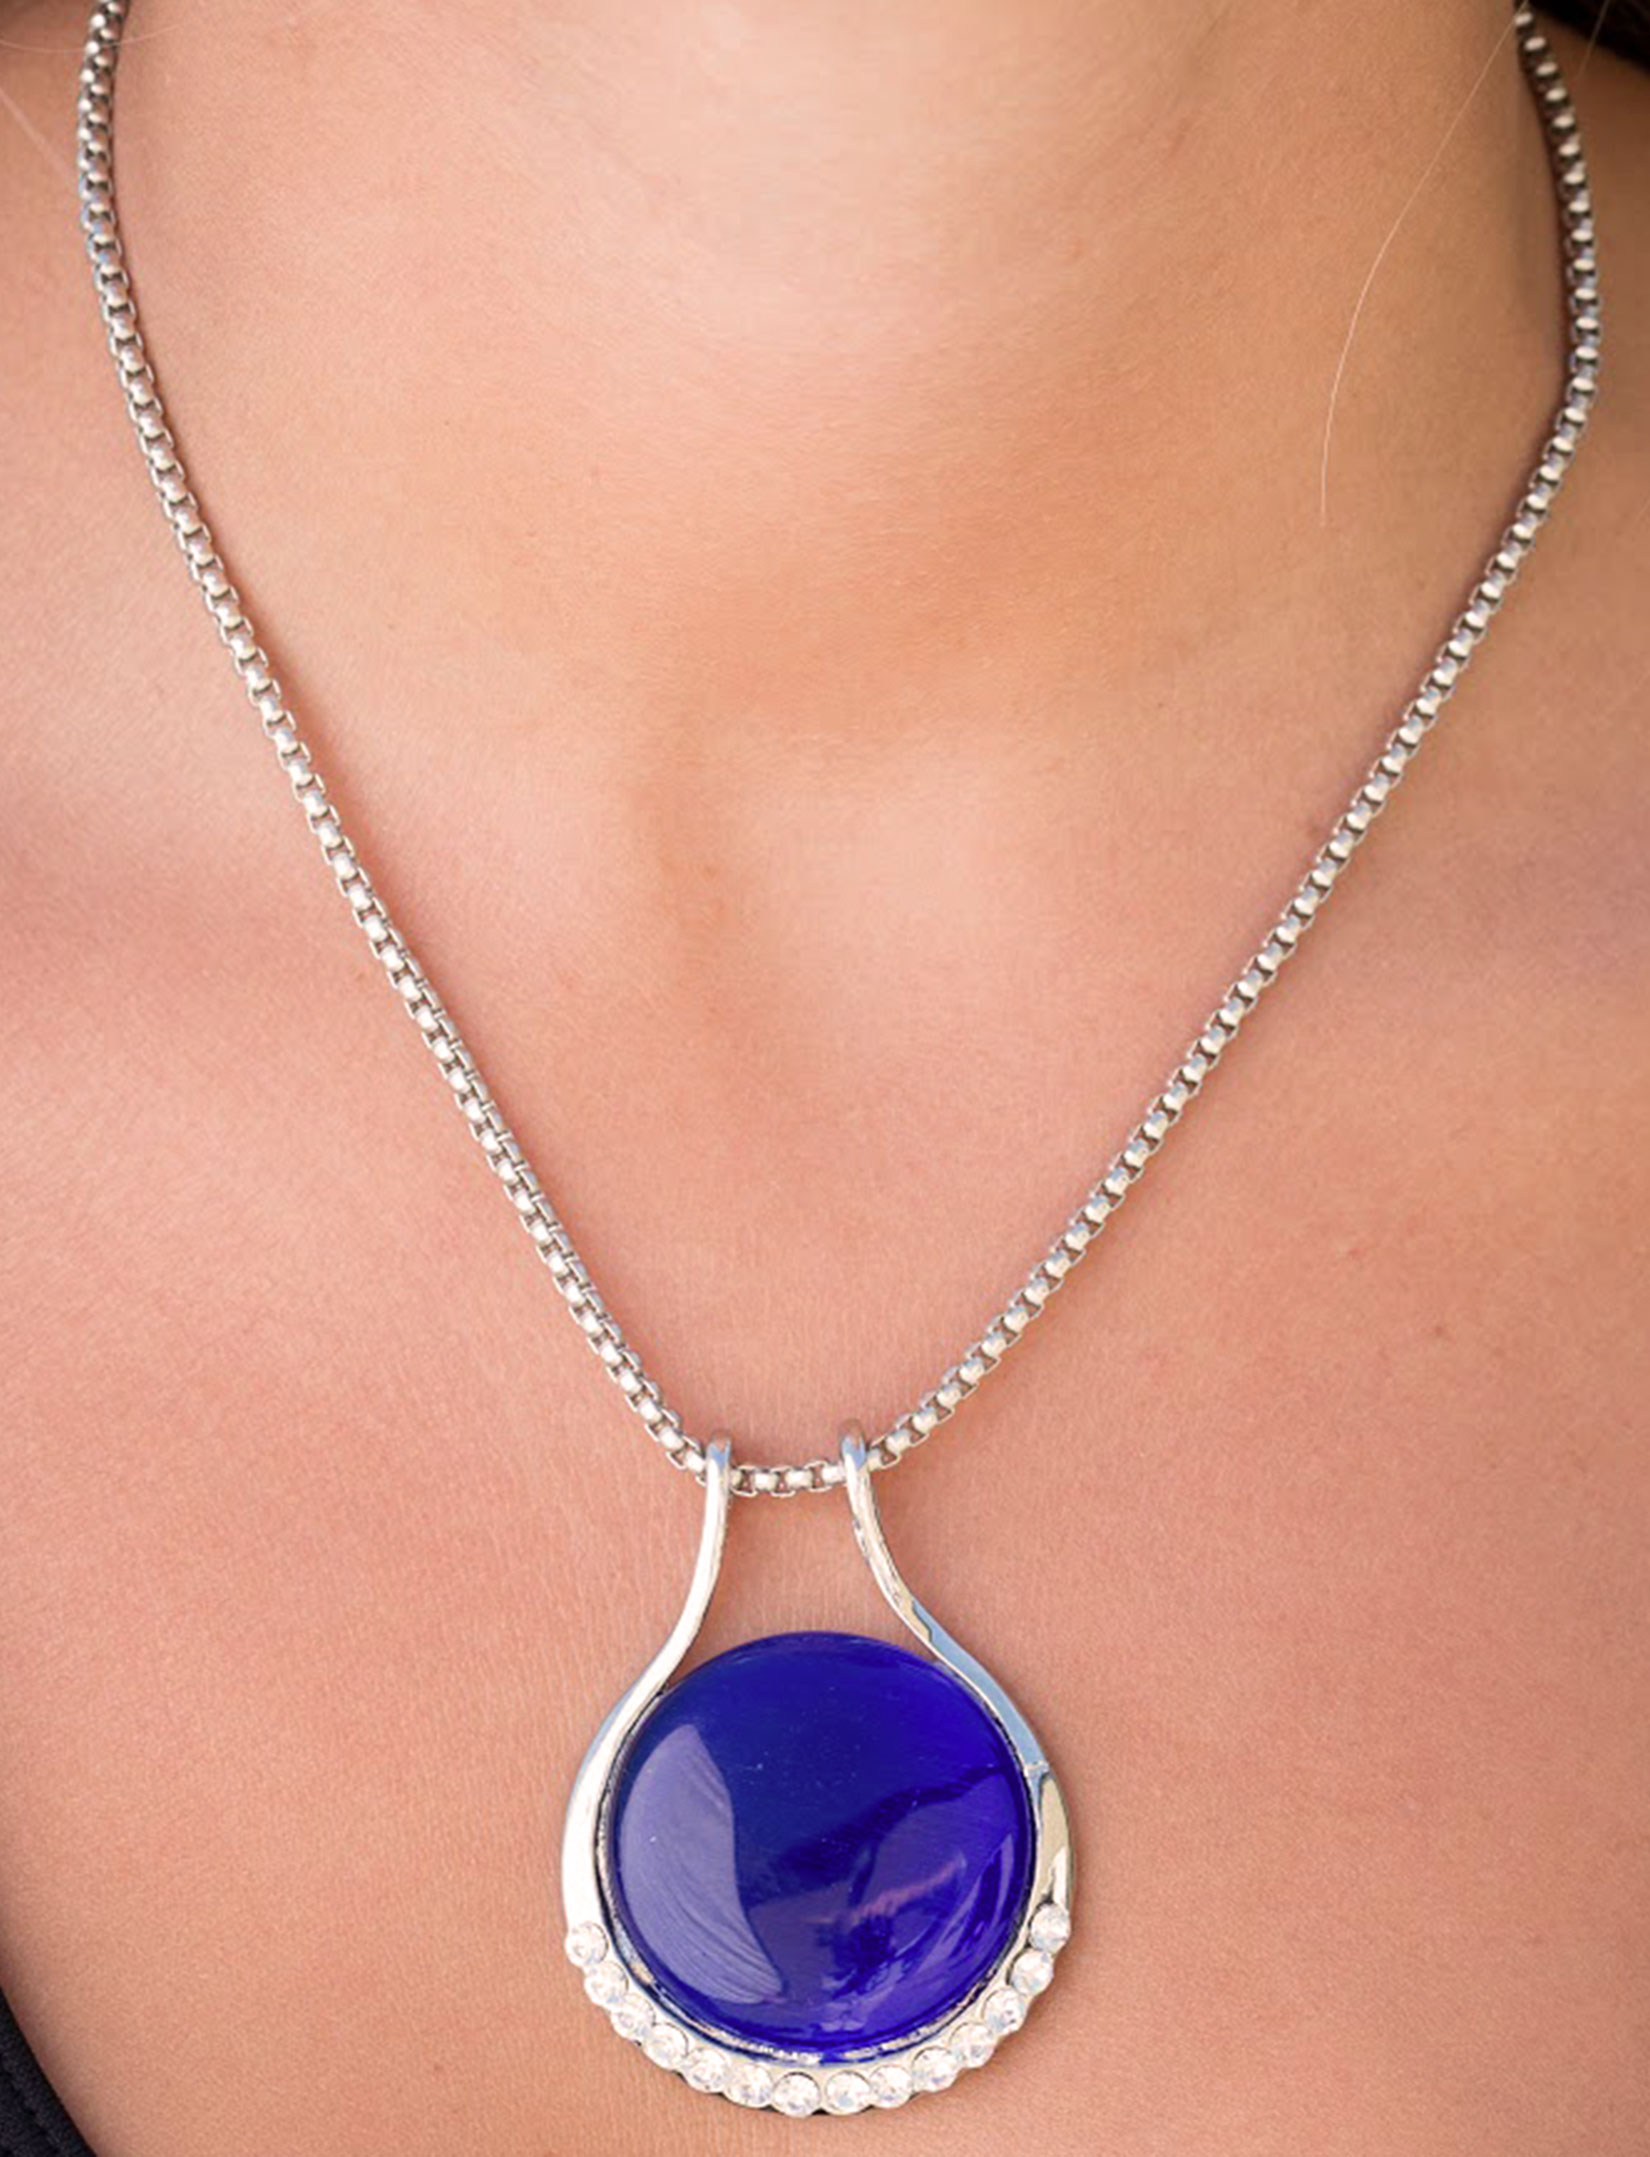 wholesale Pendant on Chain Necklace - Goddess of the Moon